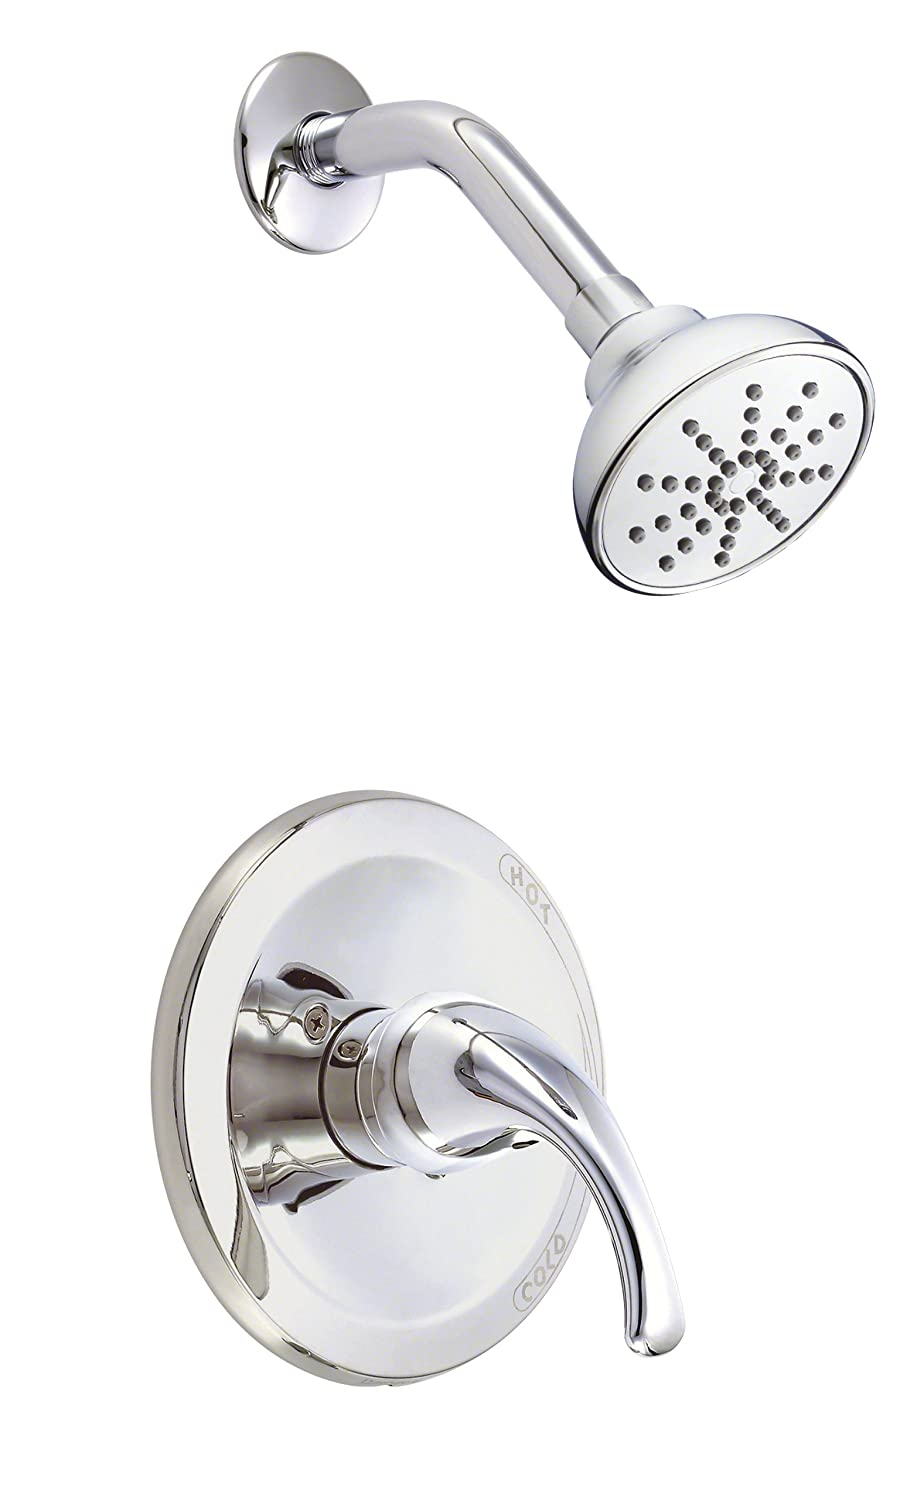 Danze D510511T Melrose Single Handle Shower Trim Kit, 2.5 GPM, Valve Not Included, Chrome